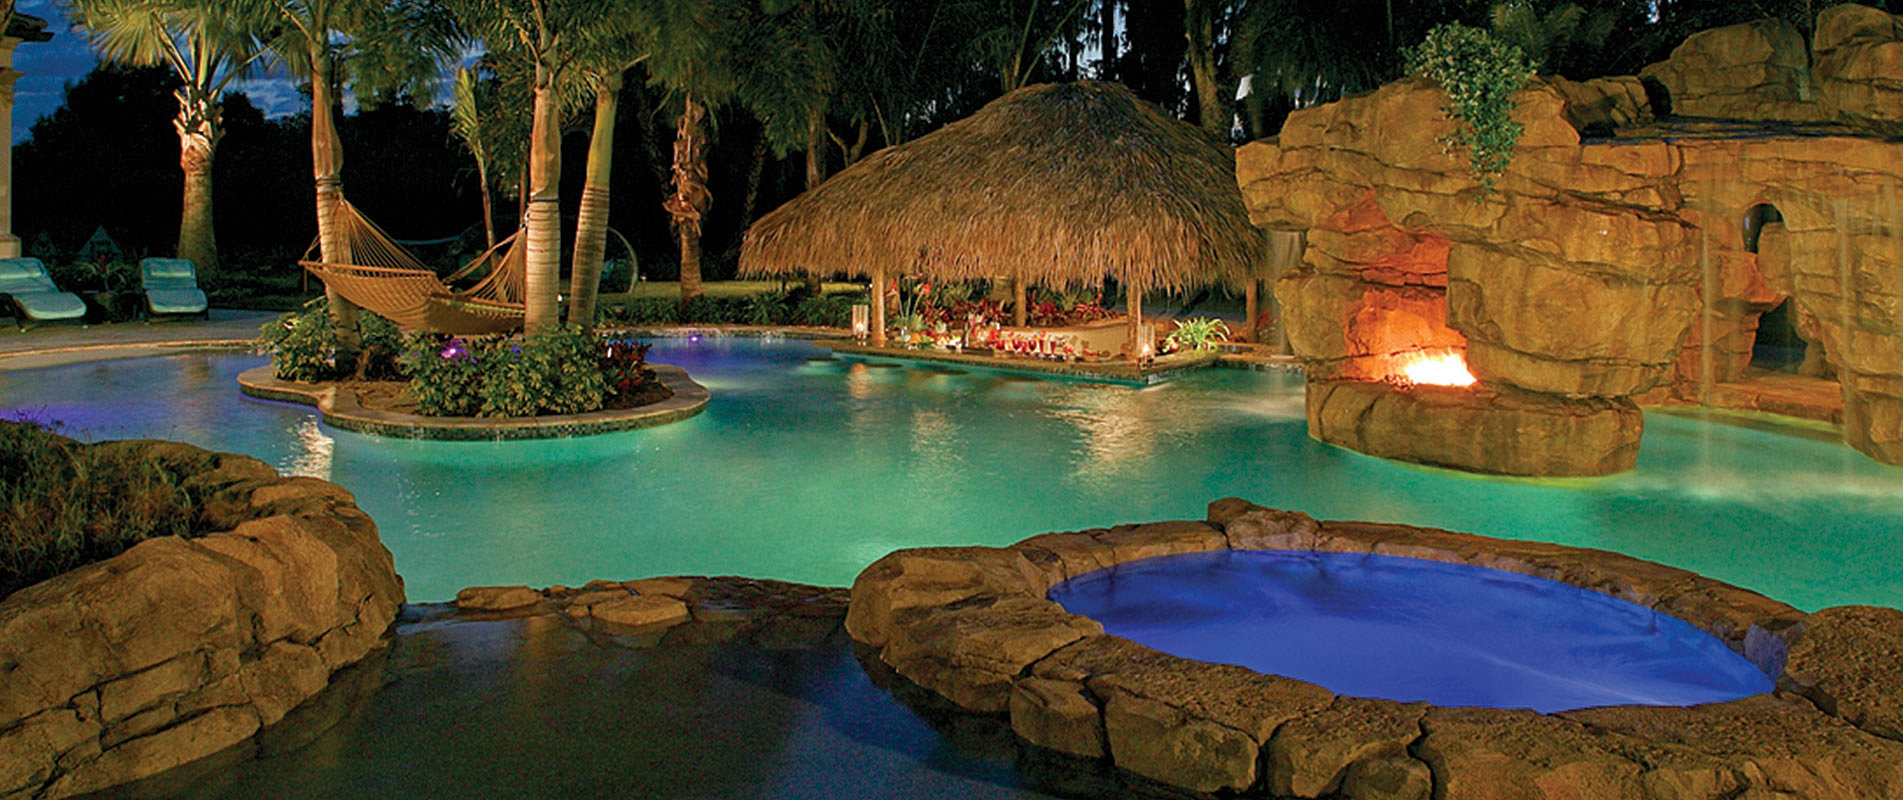 Custom luxury pools in central florida by southern pool for Pool design pictures